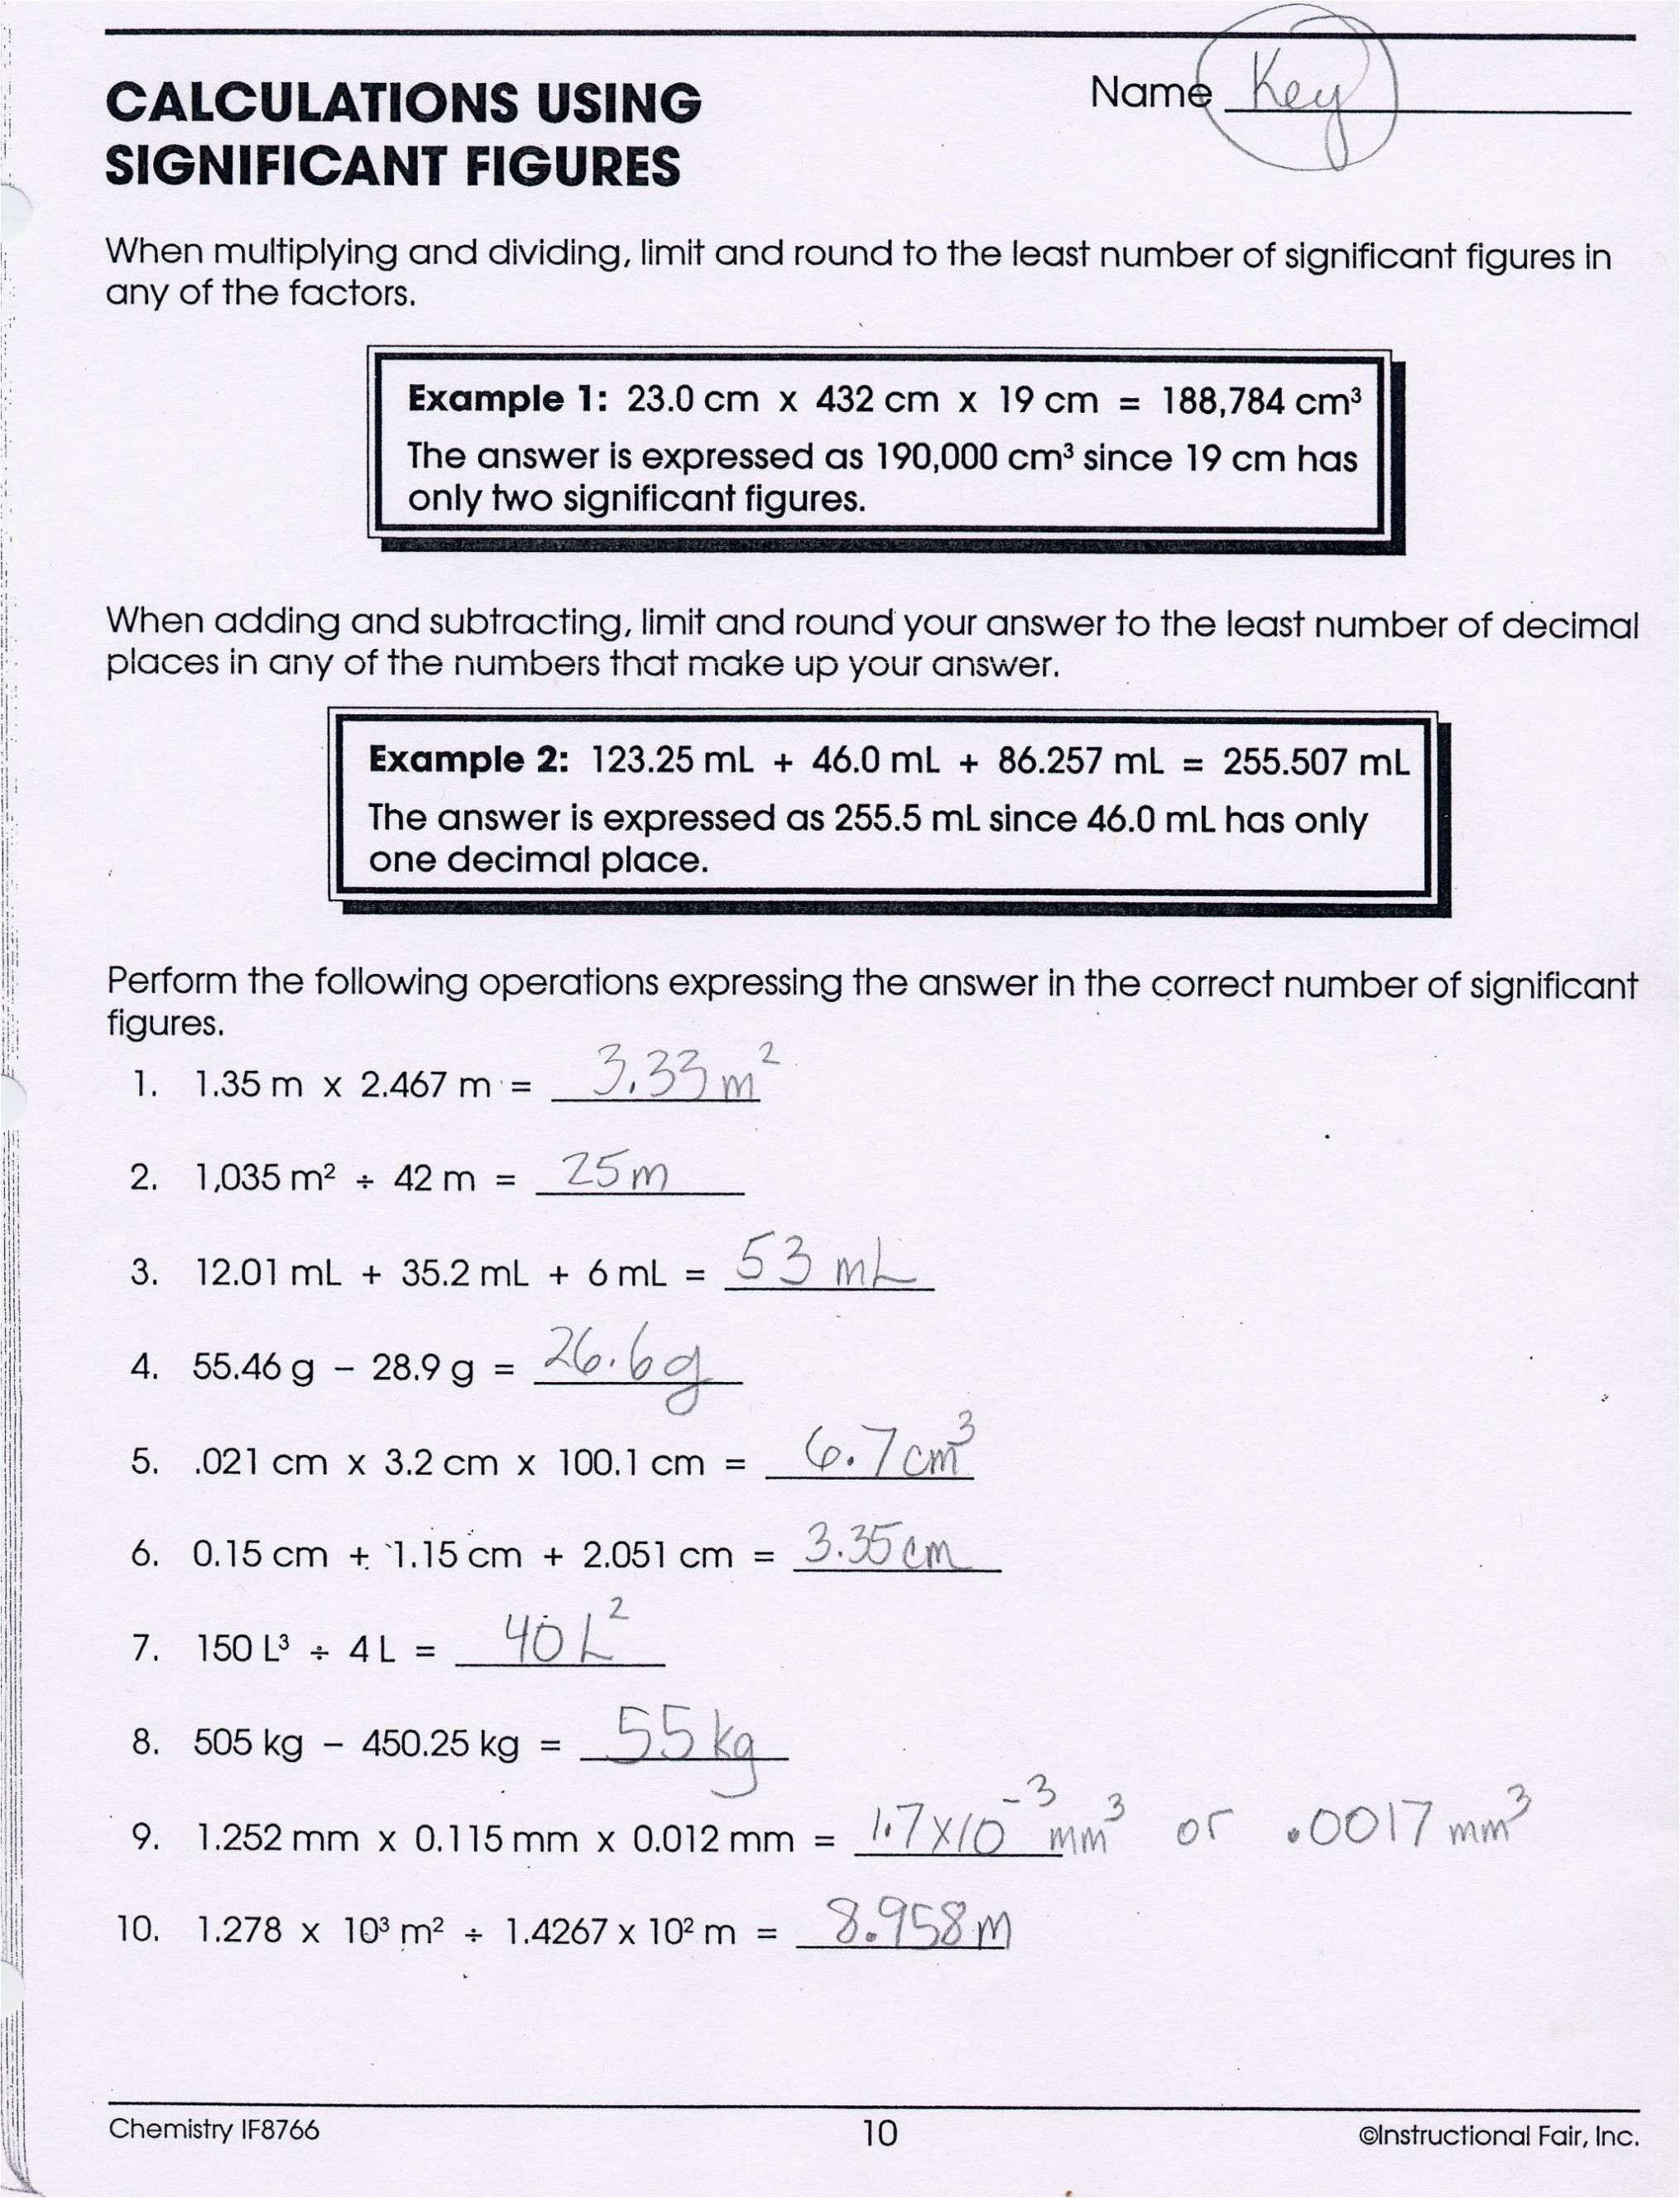 Significant Figures Worksheet Answers